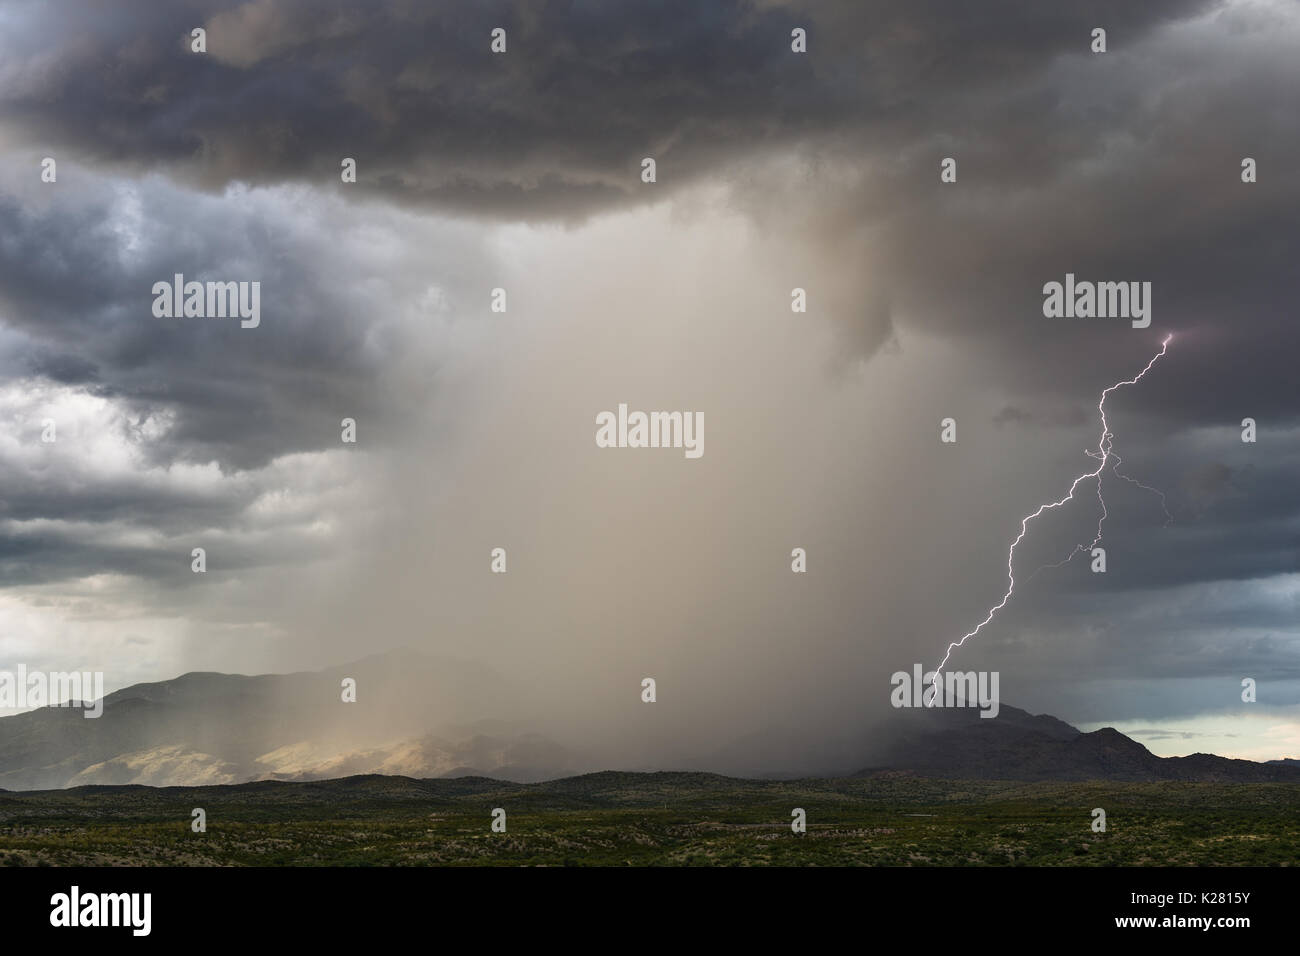 Thunderstorm with dark clouds, heavy rain and lightning over the Rincon Mountains near Tucson, Arizona - Stock Image